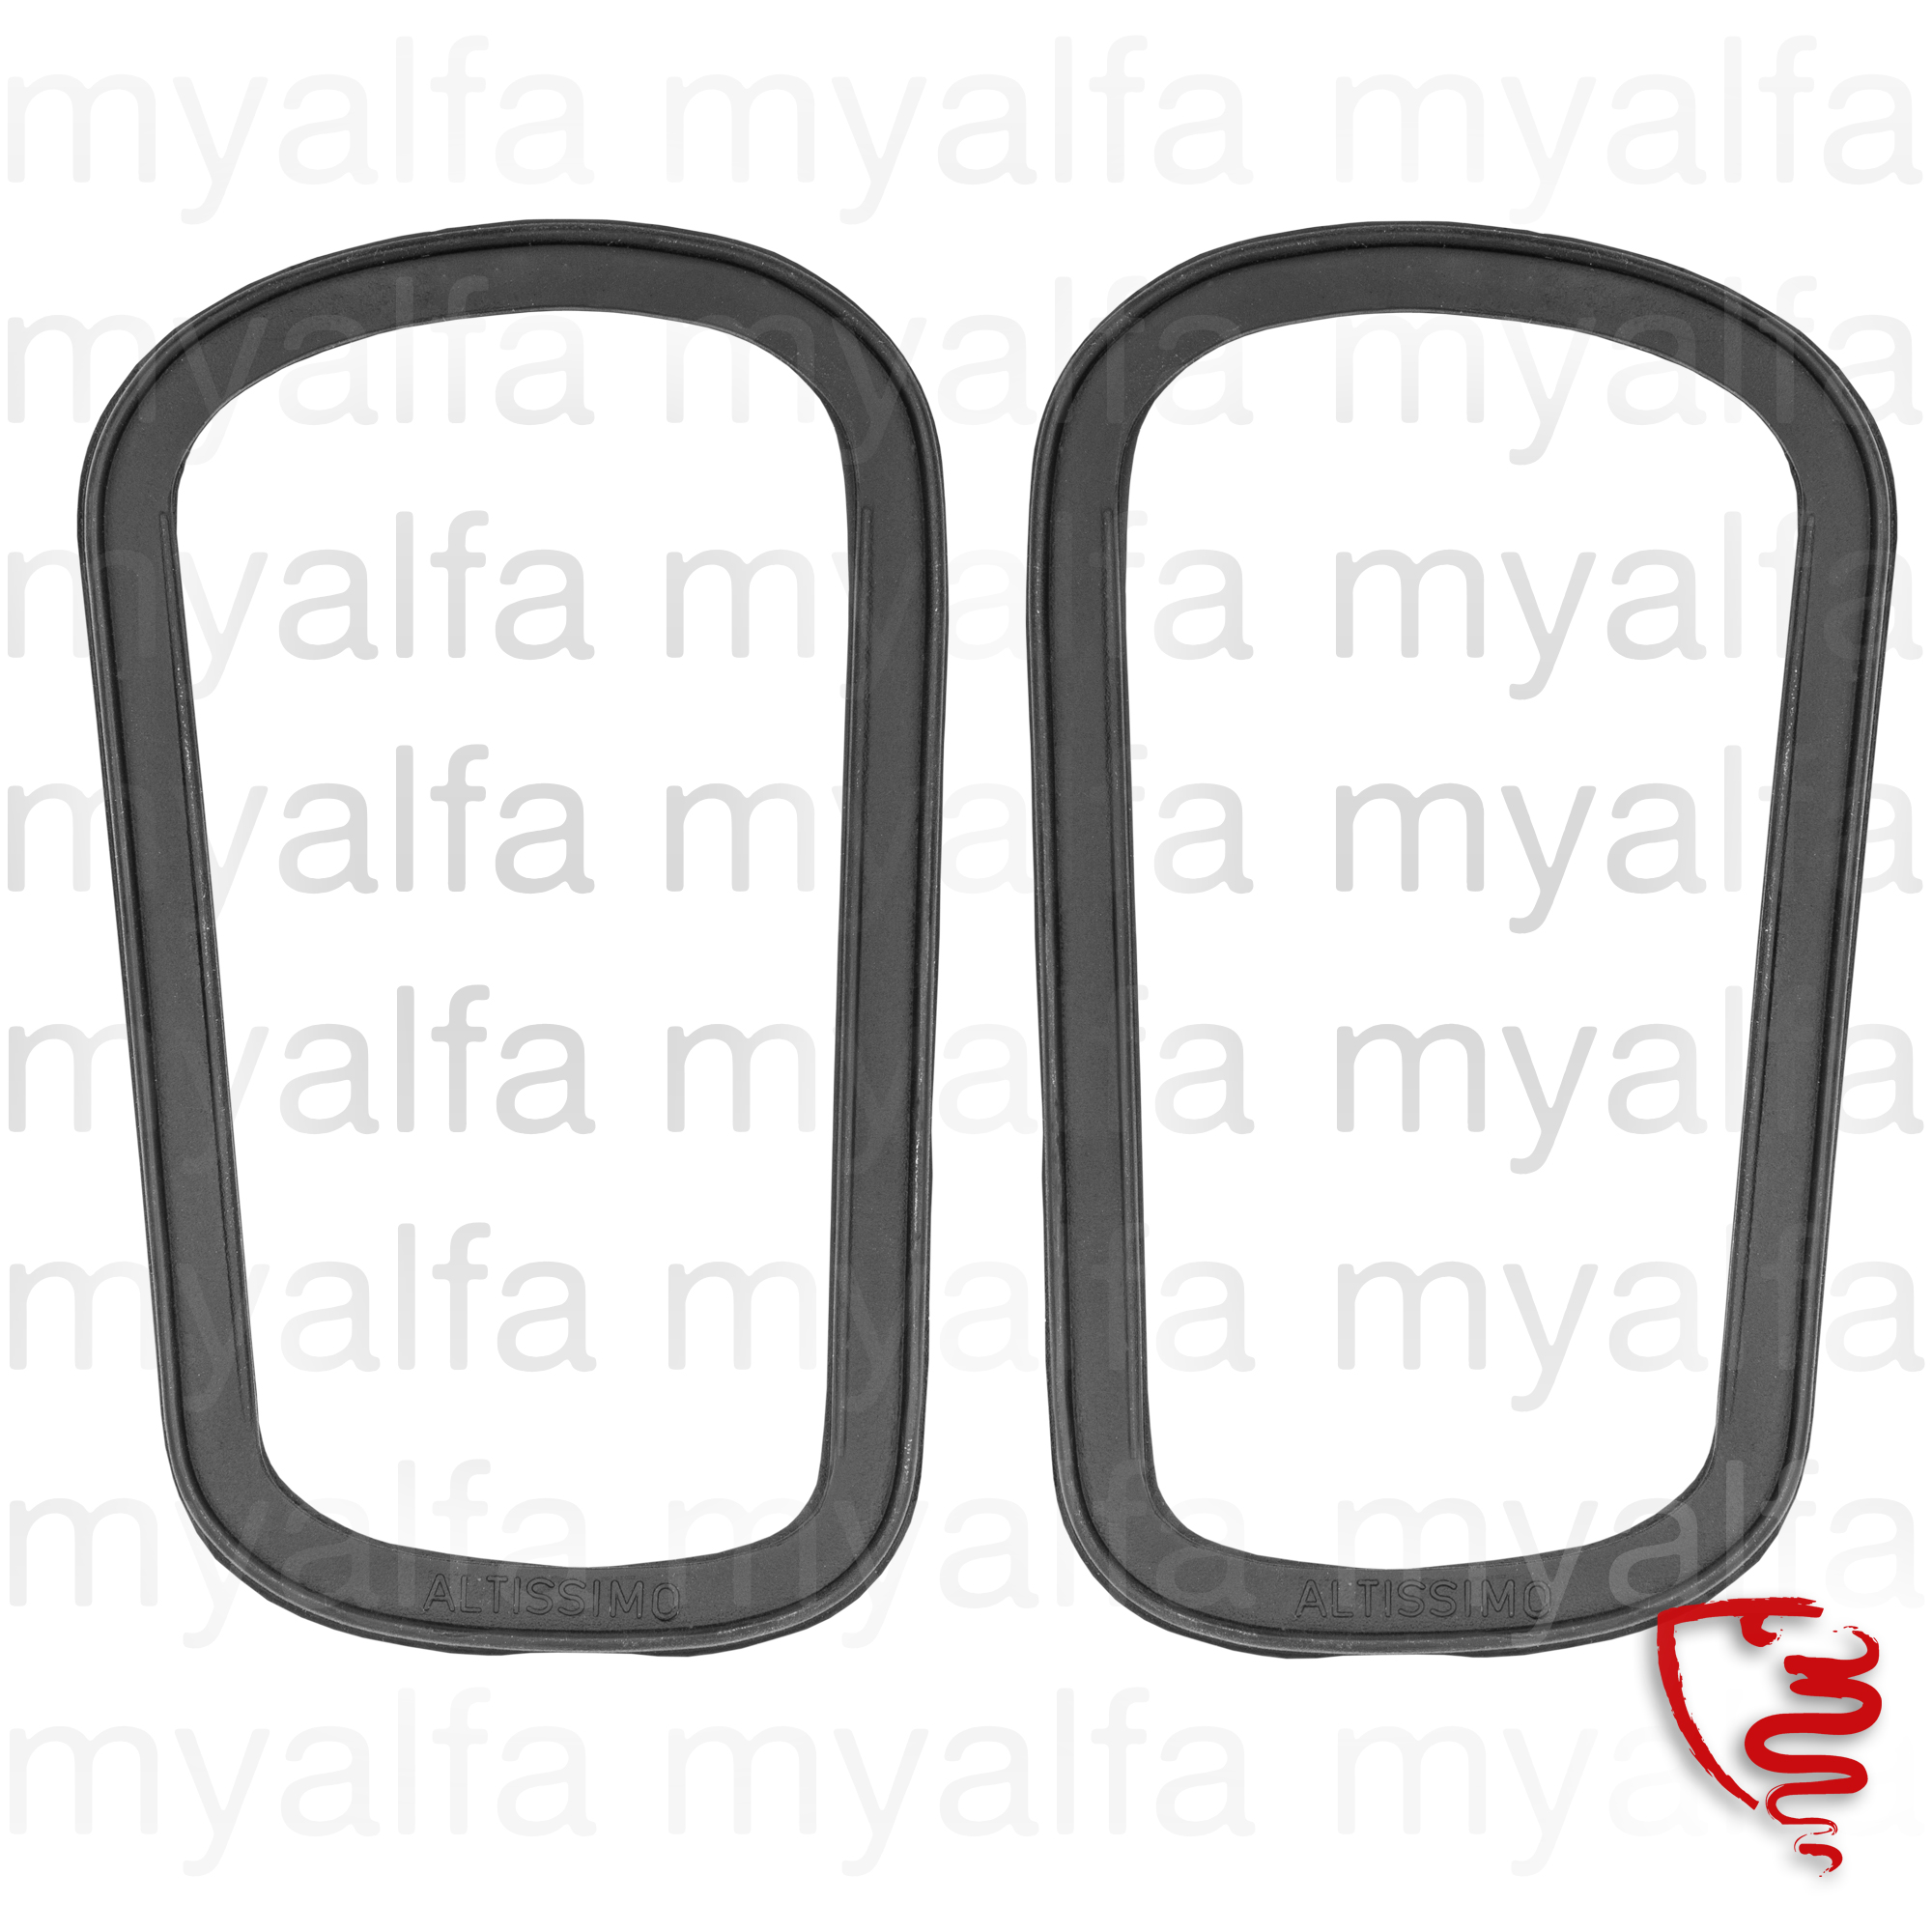 Set rubber seal body / taillight flashers for 105/115, Coupe, Body parts, Lighting, Indicators